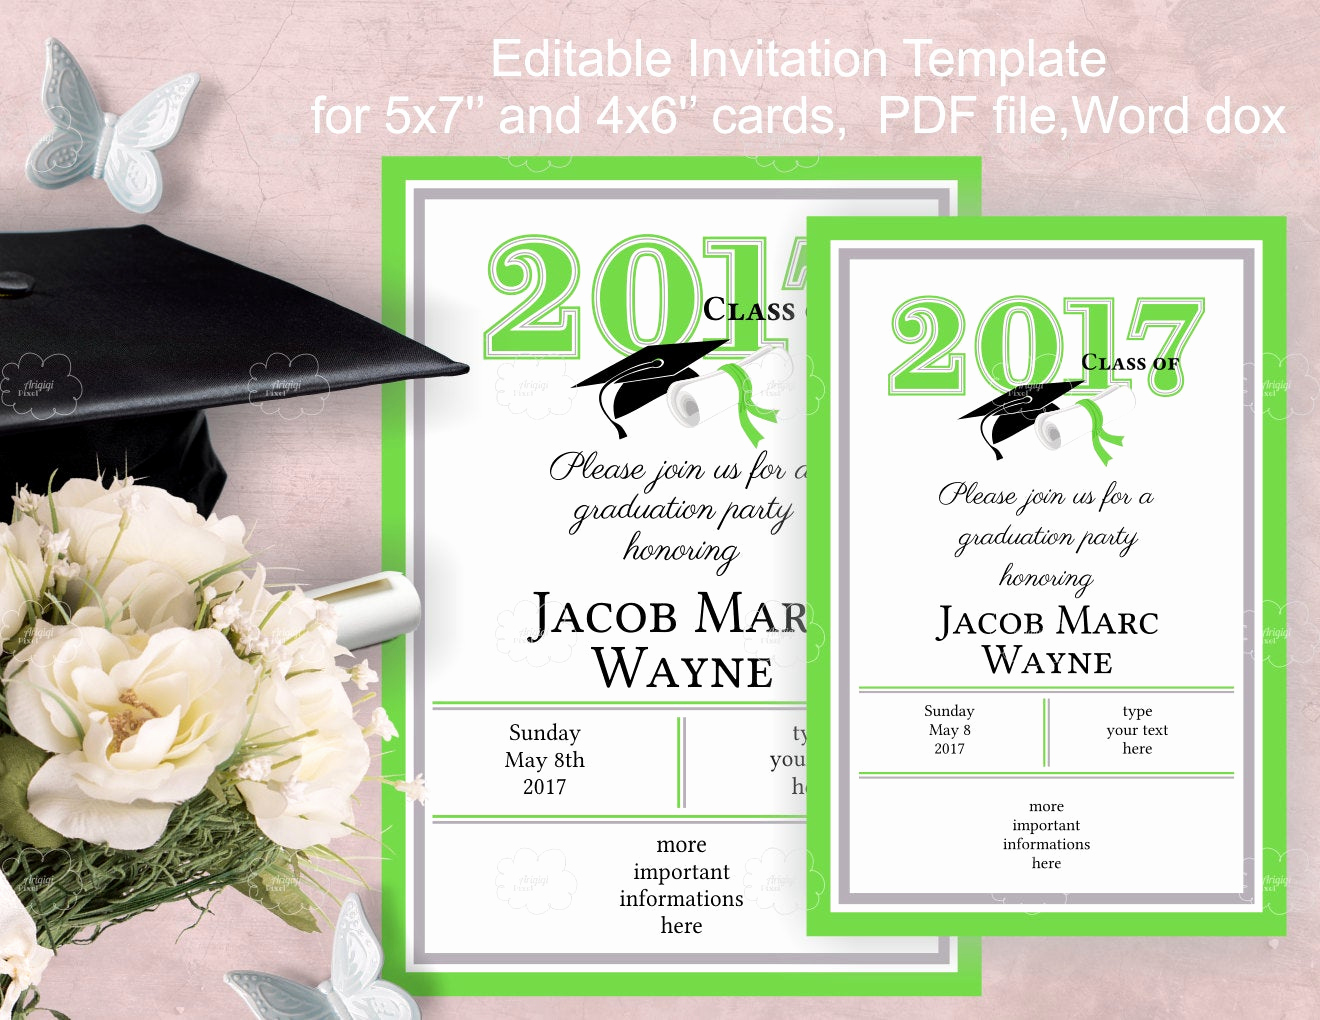 Free Downloadable Graduation Invitation Templates Unique Graduation Party Invitation Template Edit Yourself